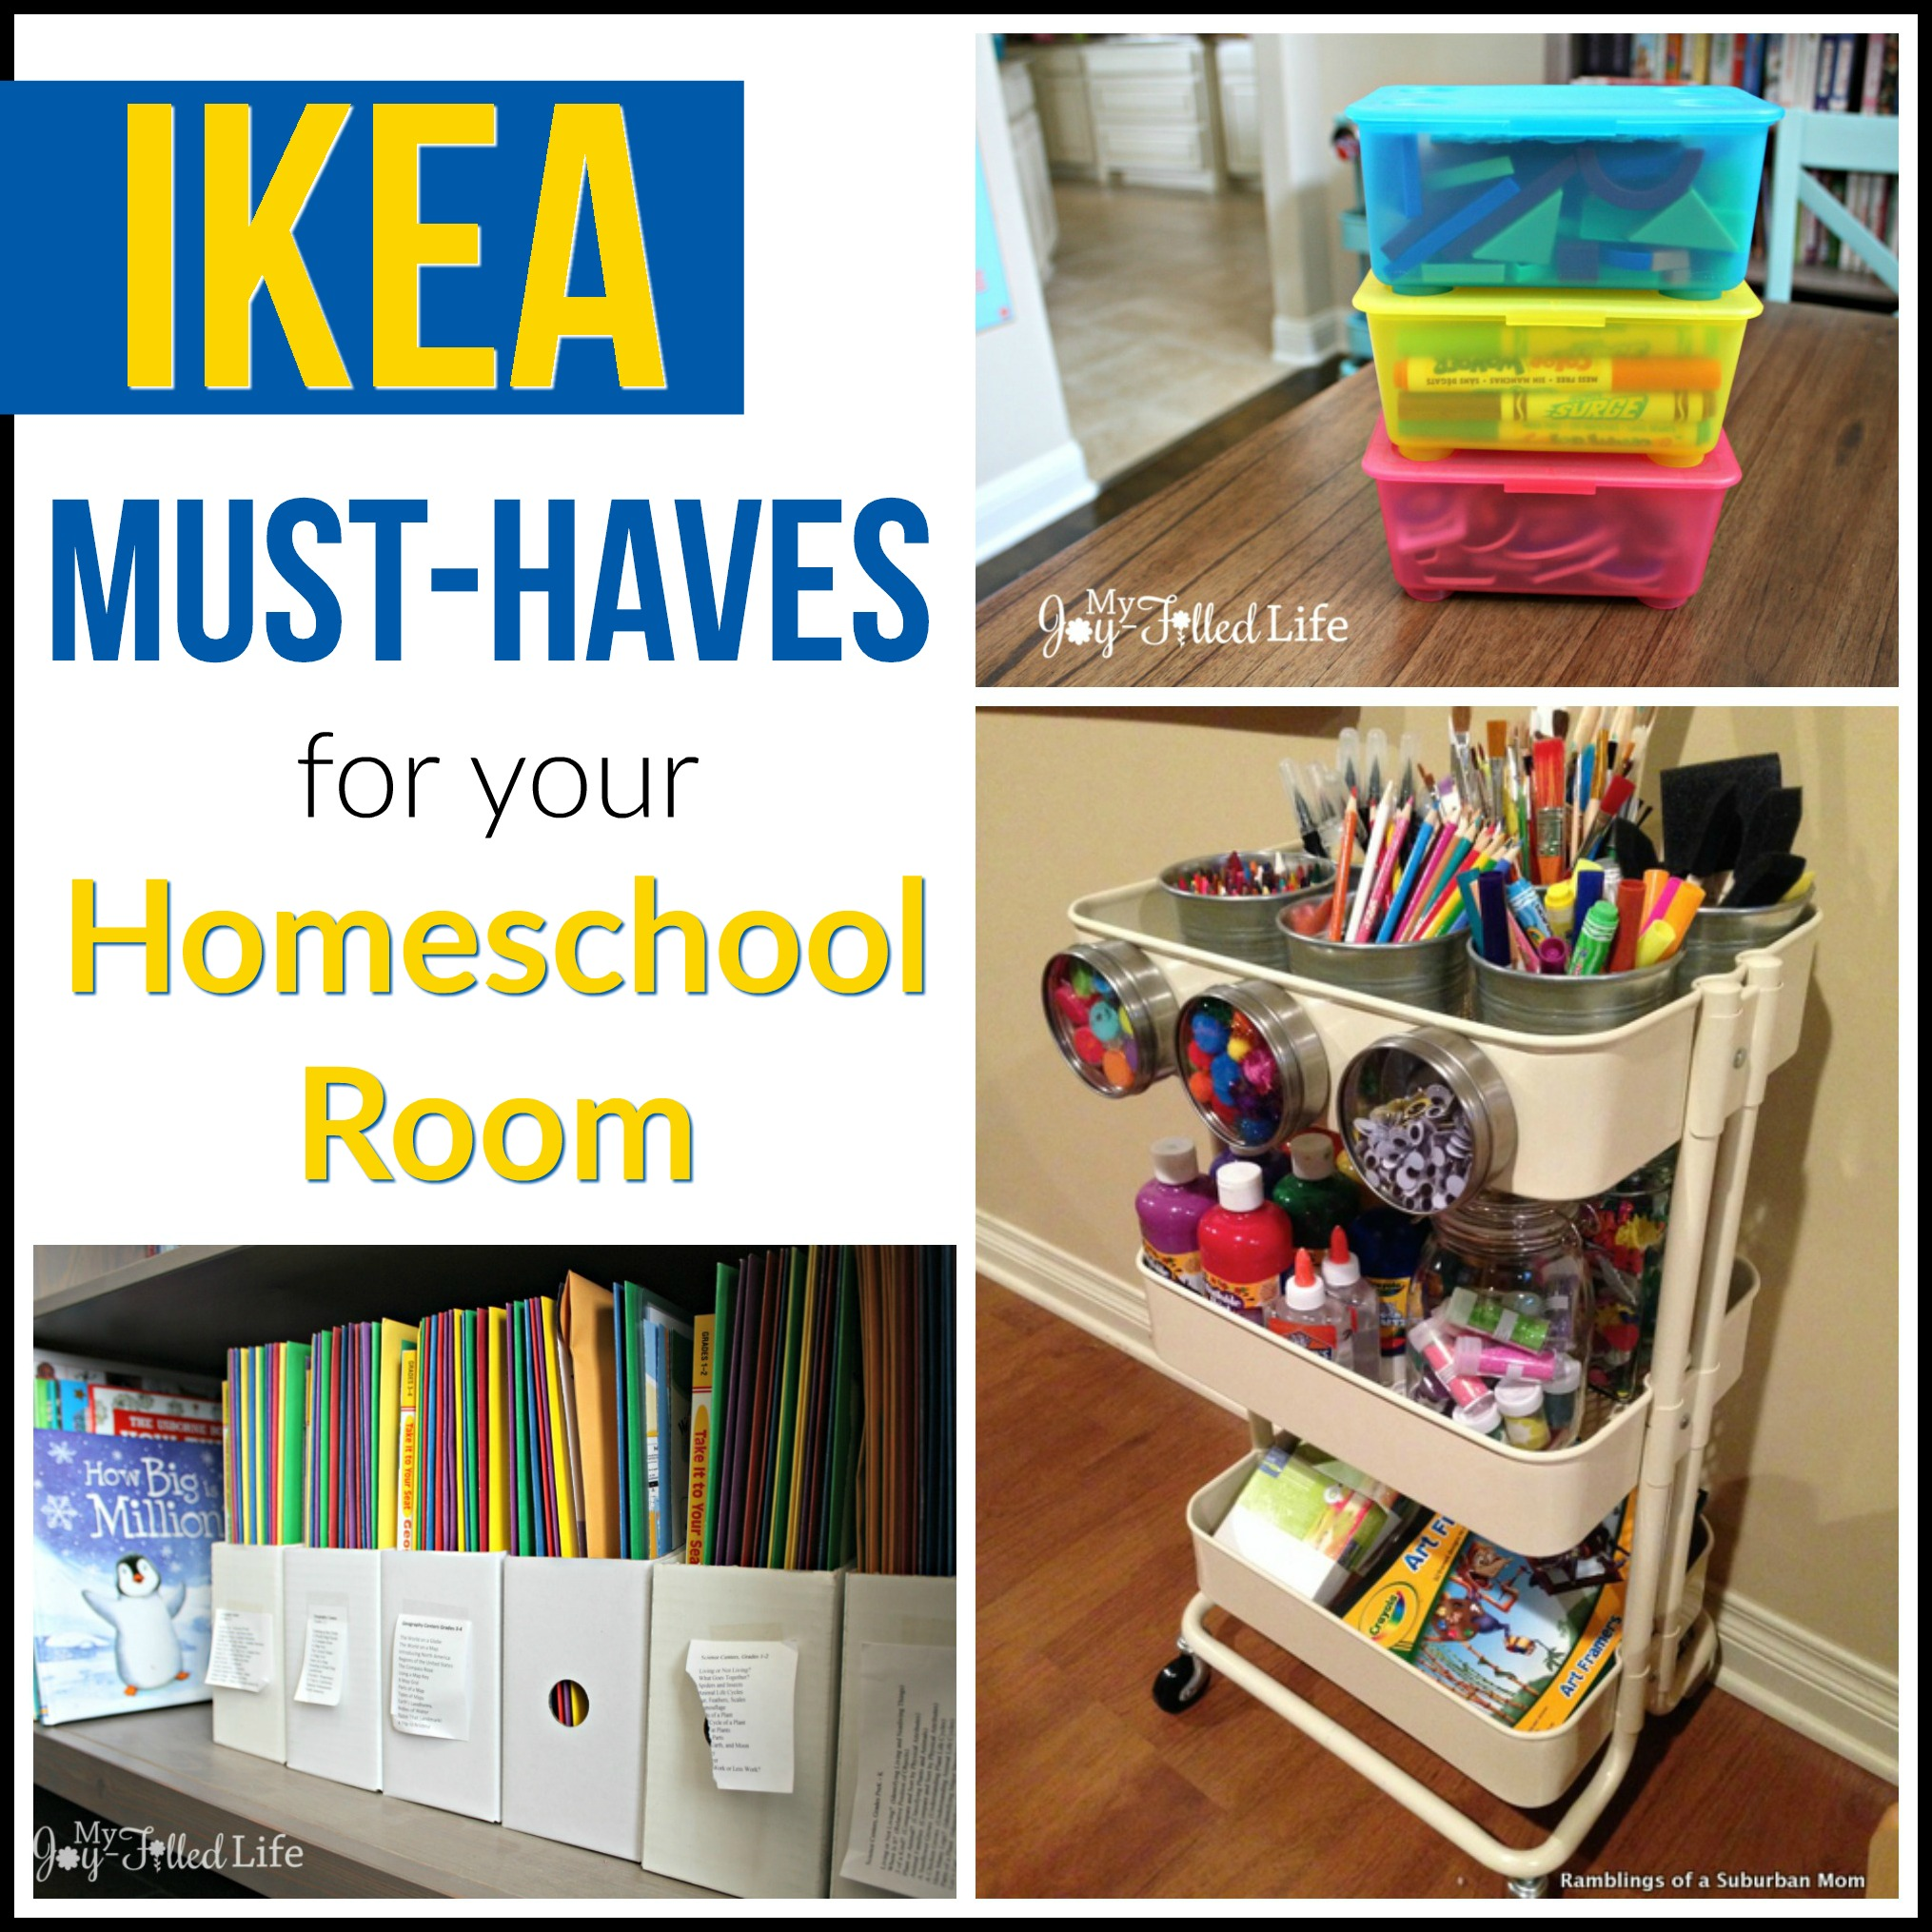 Trofast Montessori Ikea Must Haves For Your Homeschool Room My Joy Filled Life